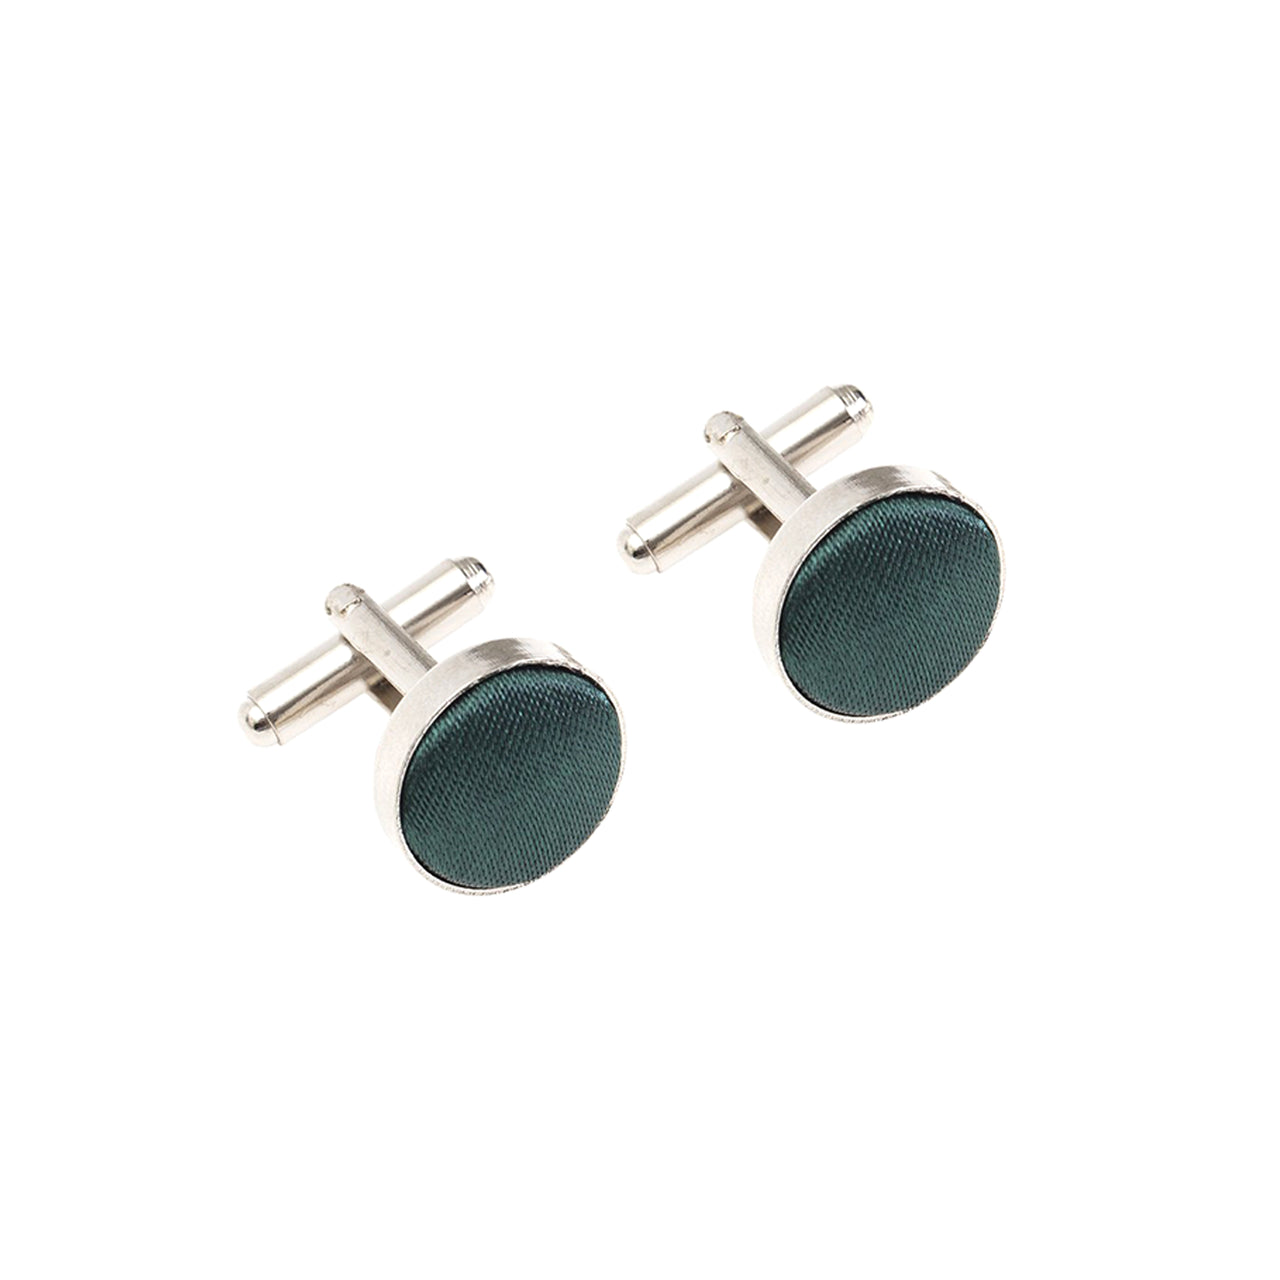 Fabric Cufflinks - Dark Green